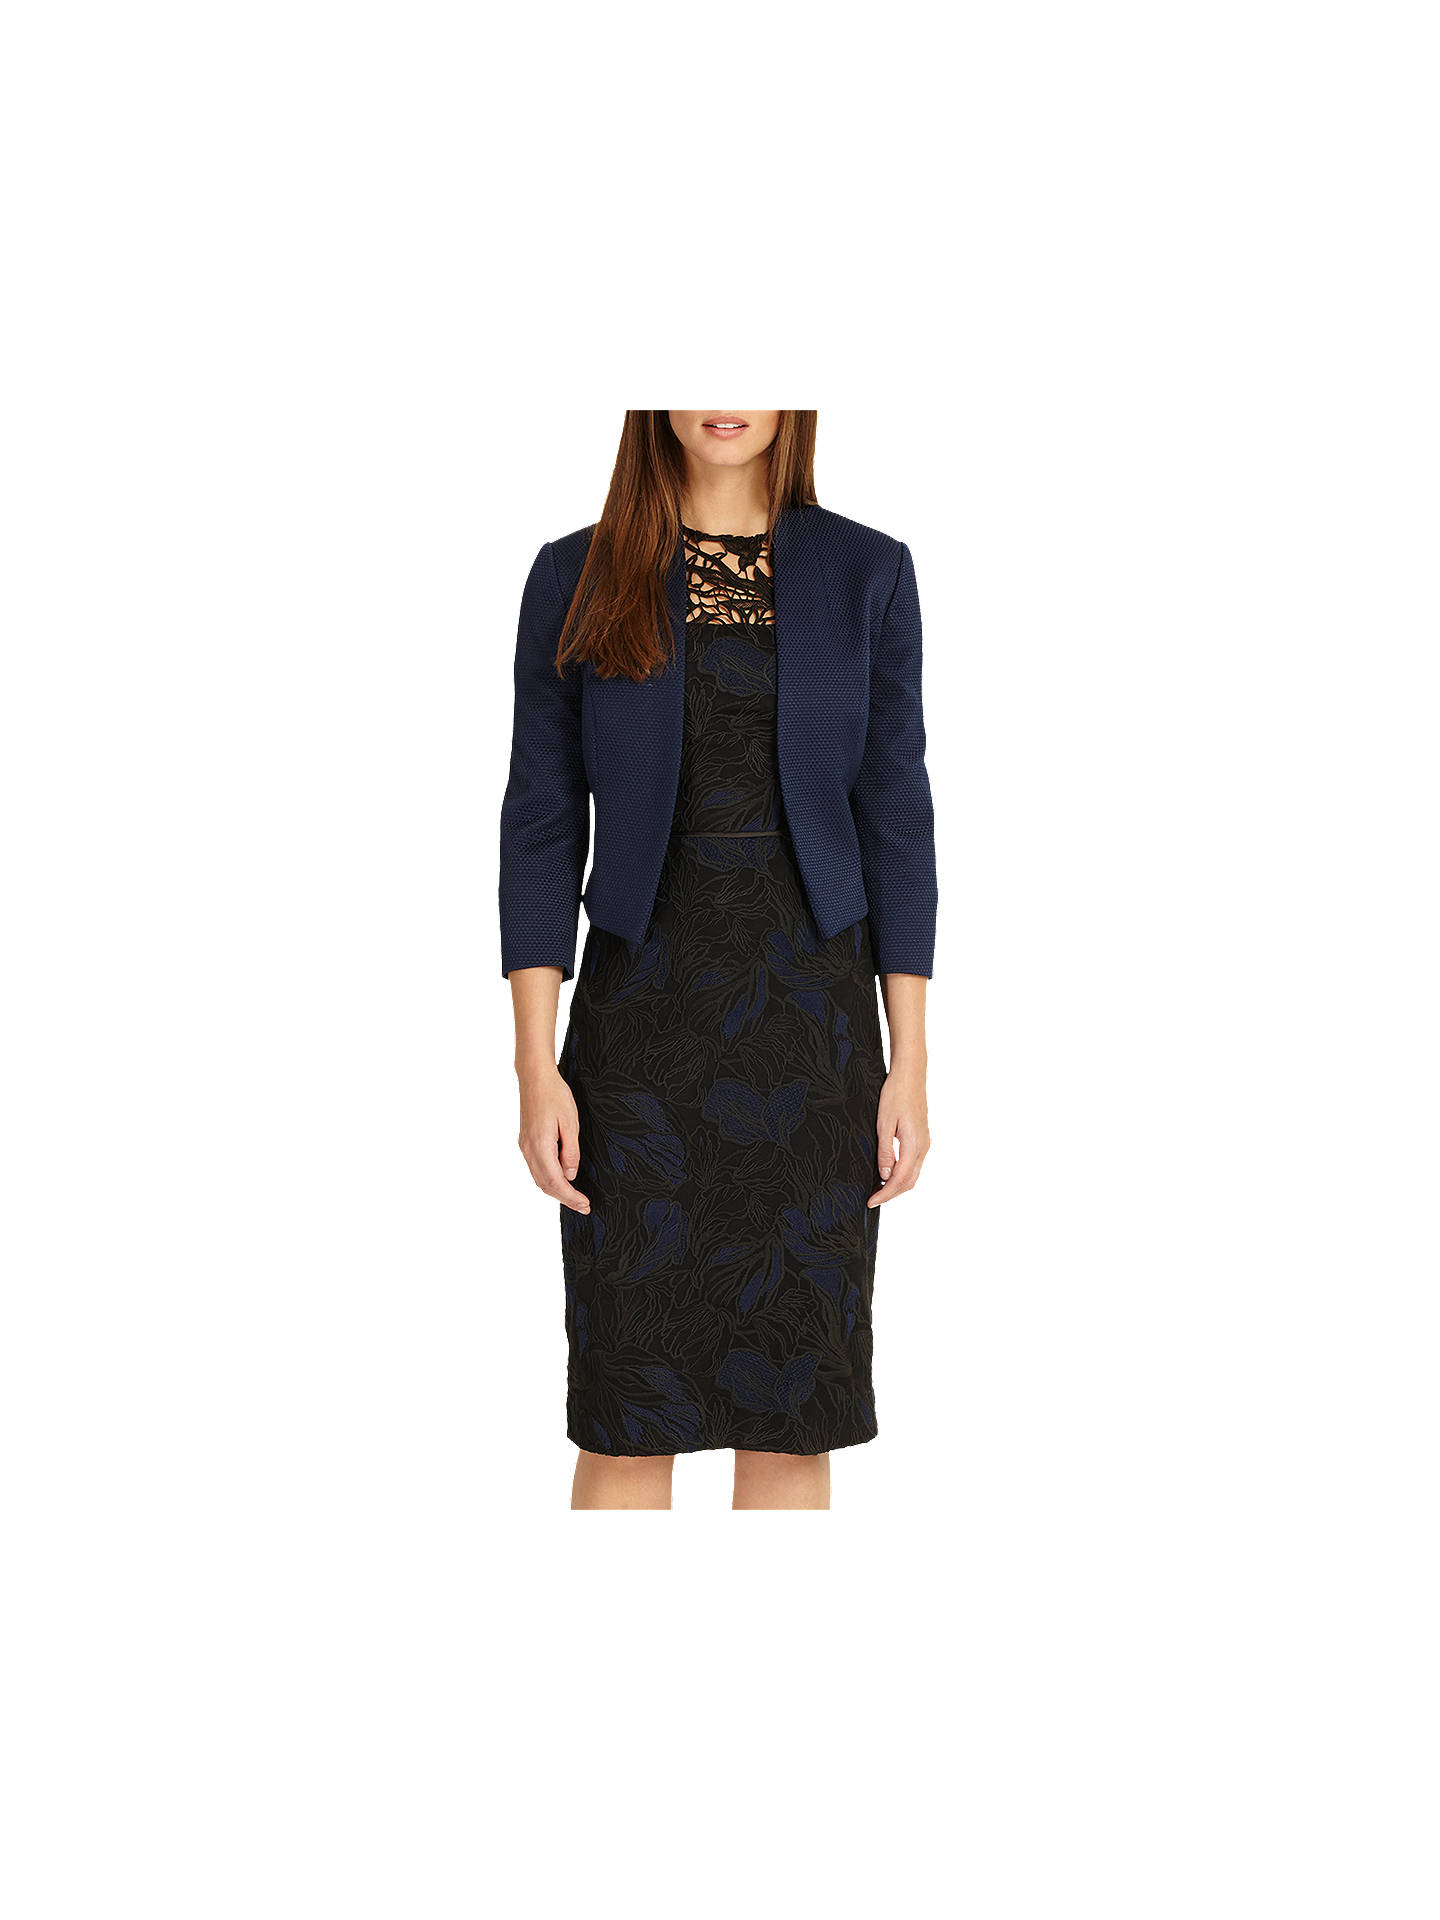 BuyPhase Eight Valda Jacket, Sapphire, 6 Online at johnlewis.com